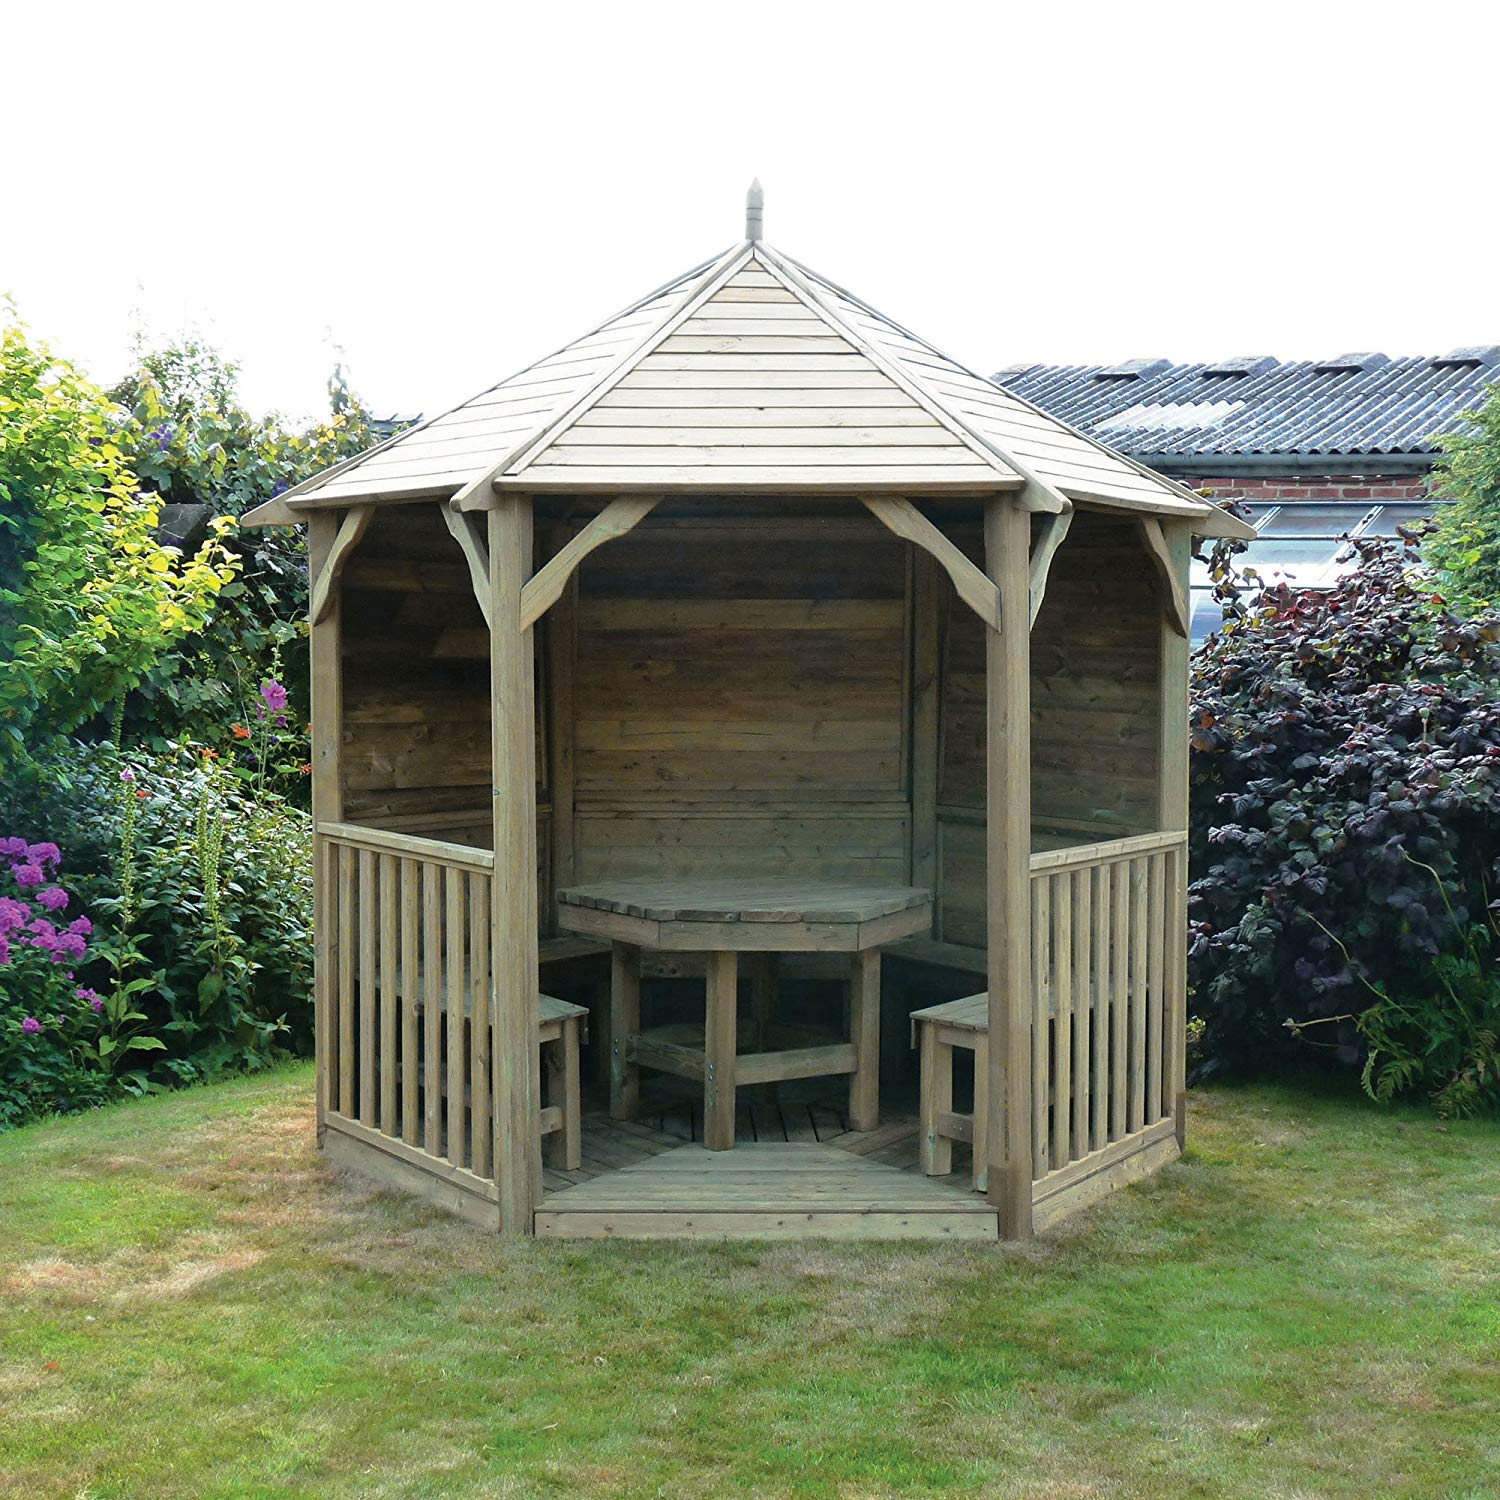 wooden gazebos hampshire gazebo with sides (without central furniture) - pressure treated:  amazon.co.uk: FSXEULP